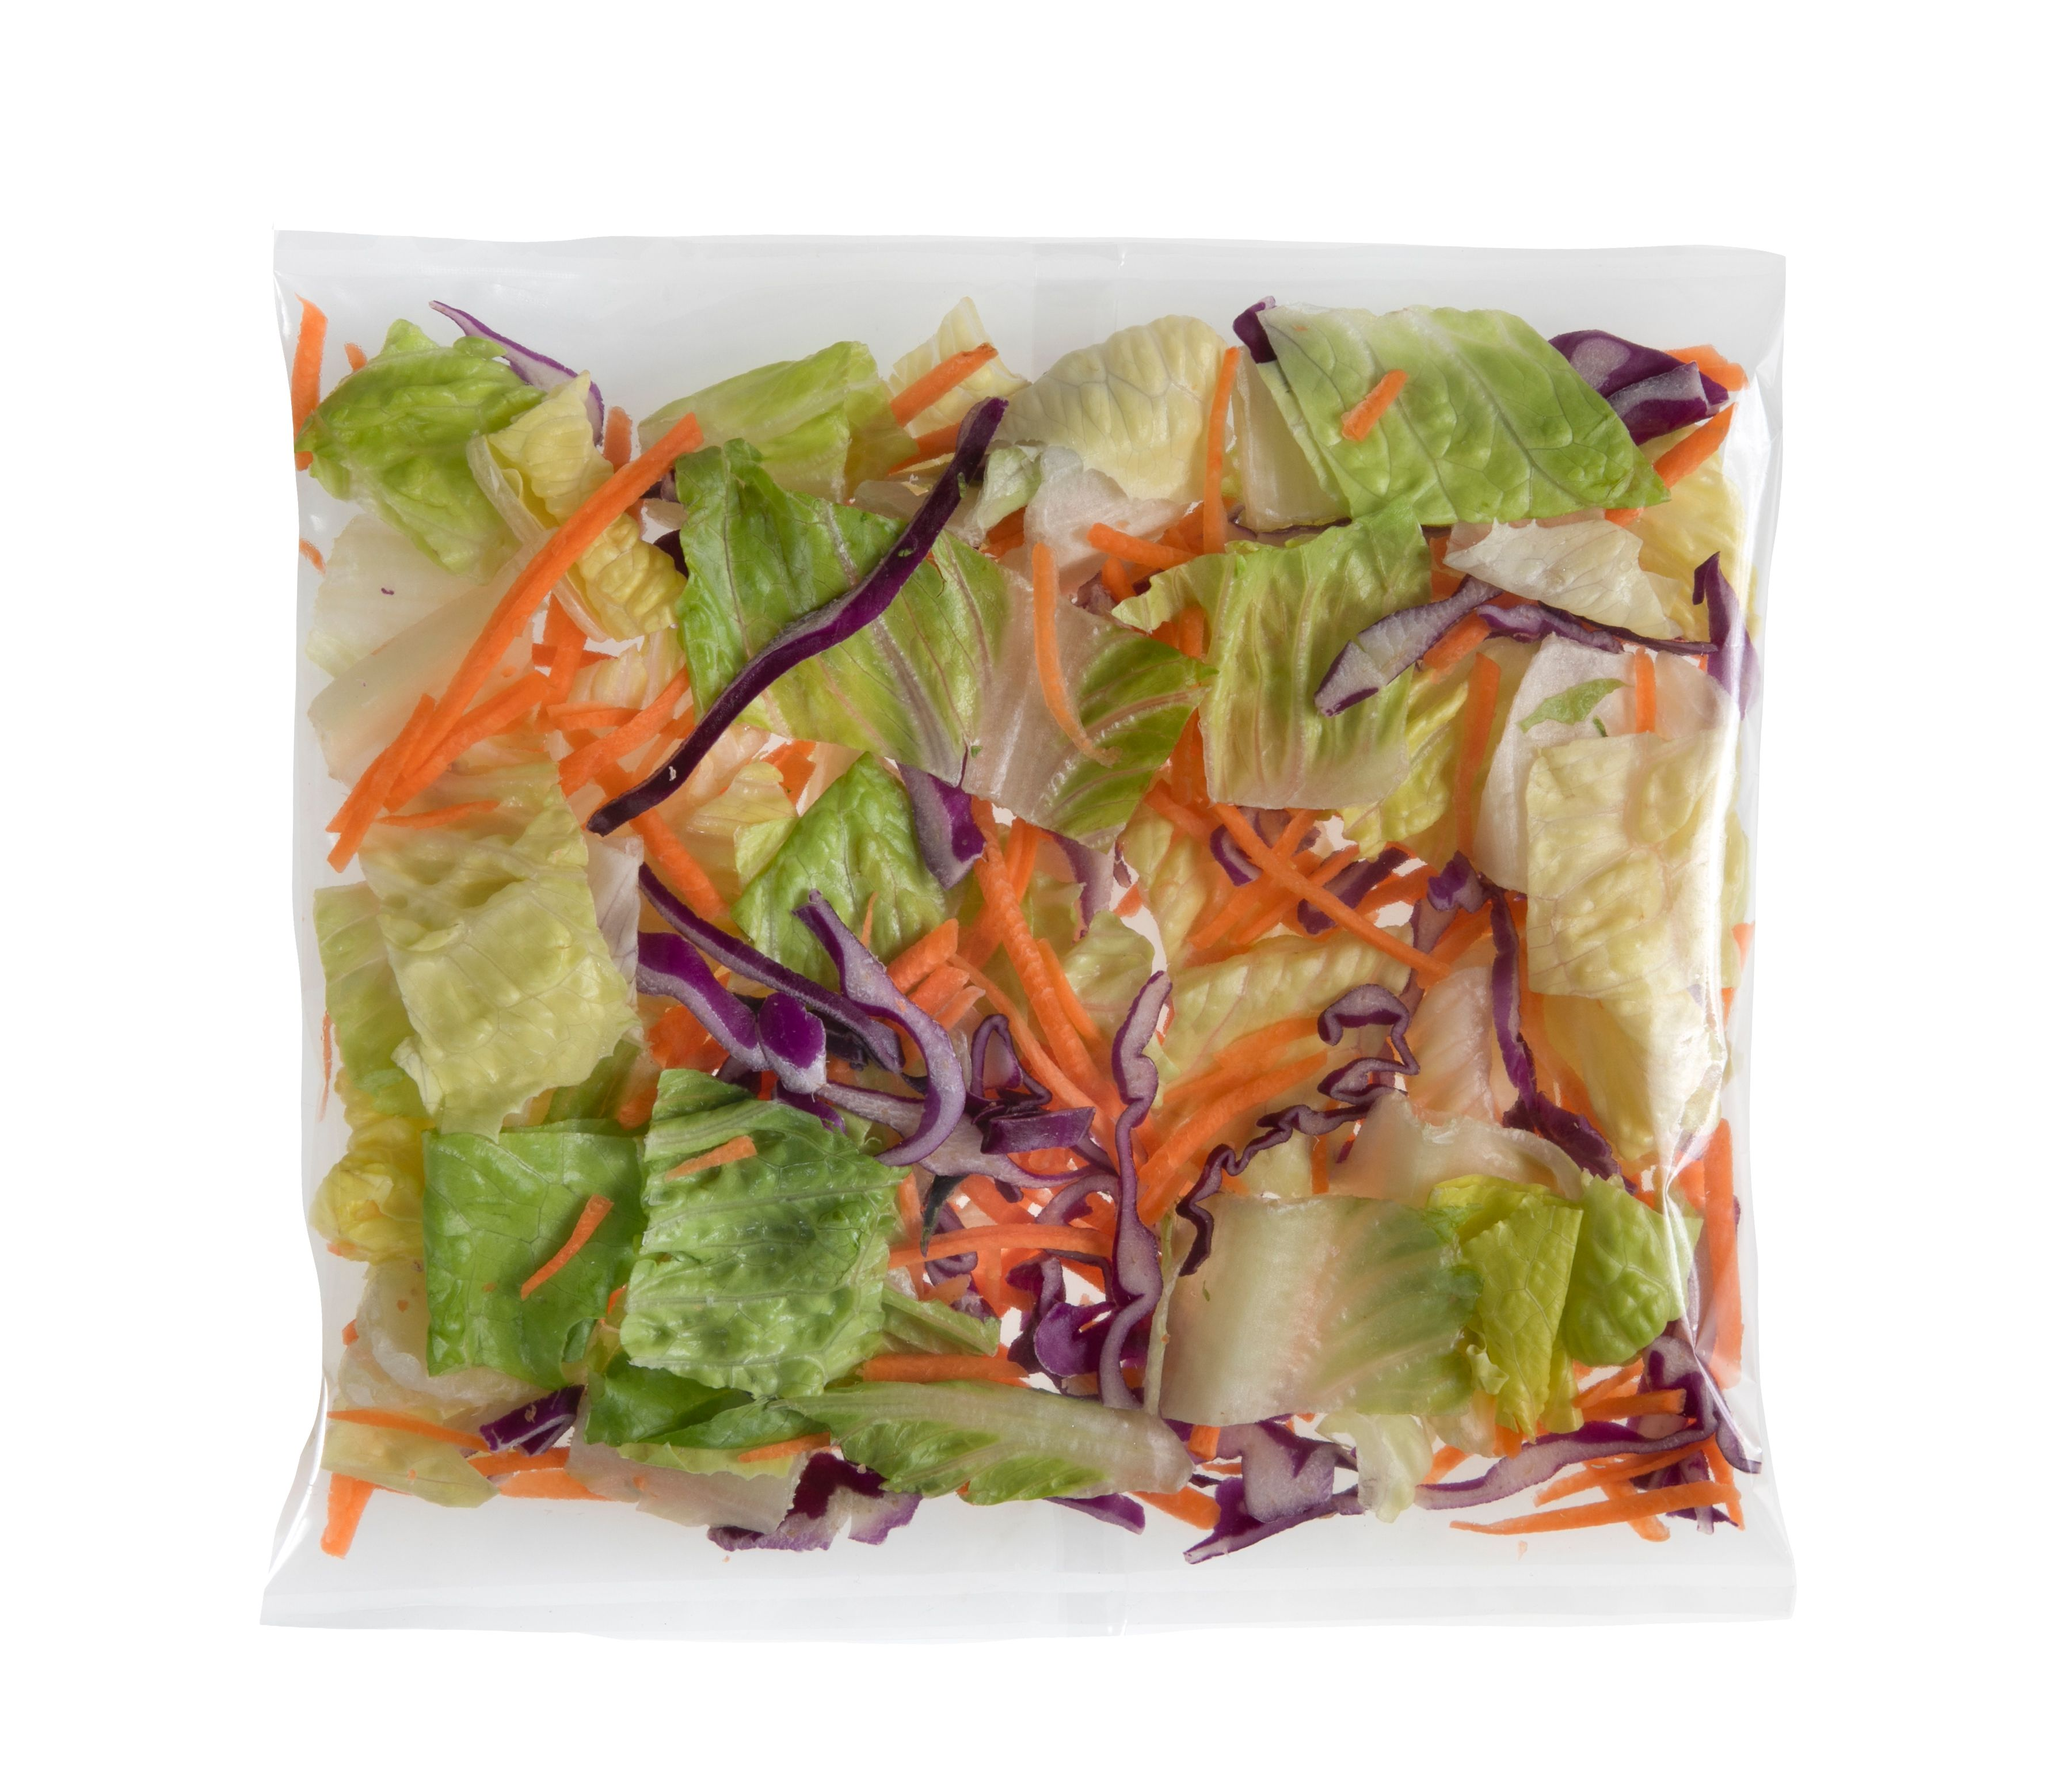 Lettuce, Romaine Blend (50 ct/cs, 2.6 oz bags, Monterey County, 8.126 lbs)